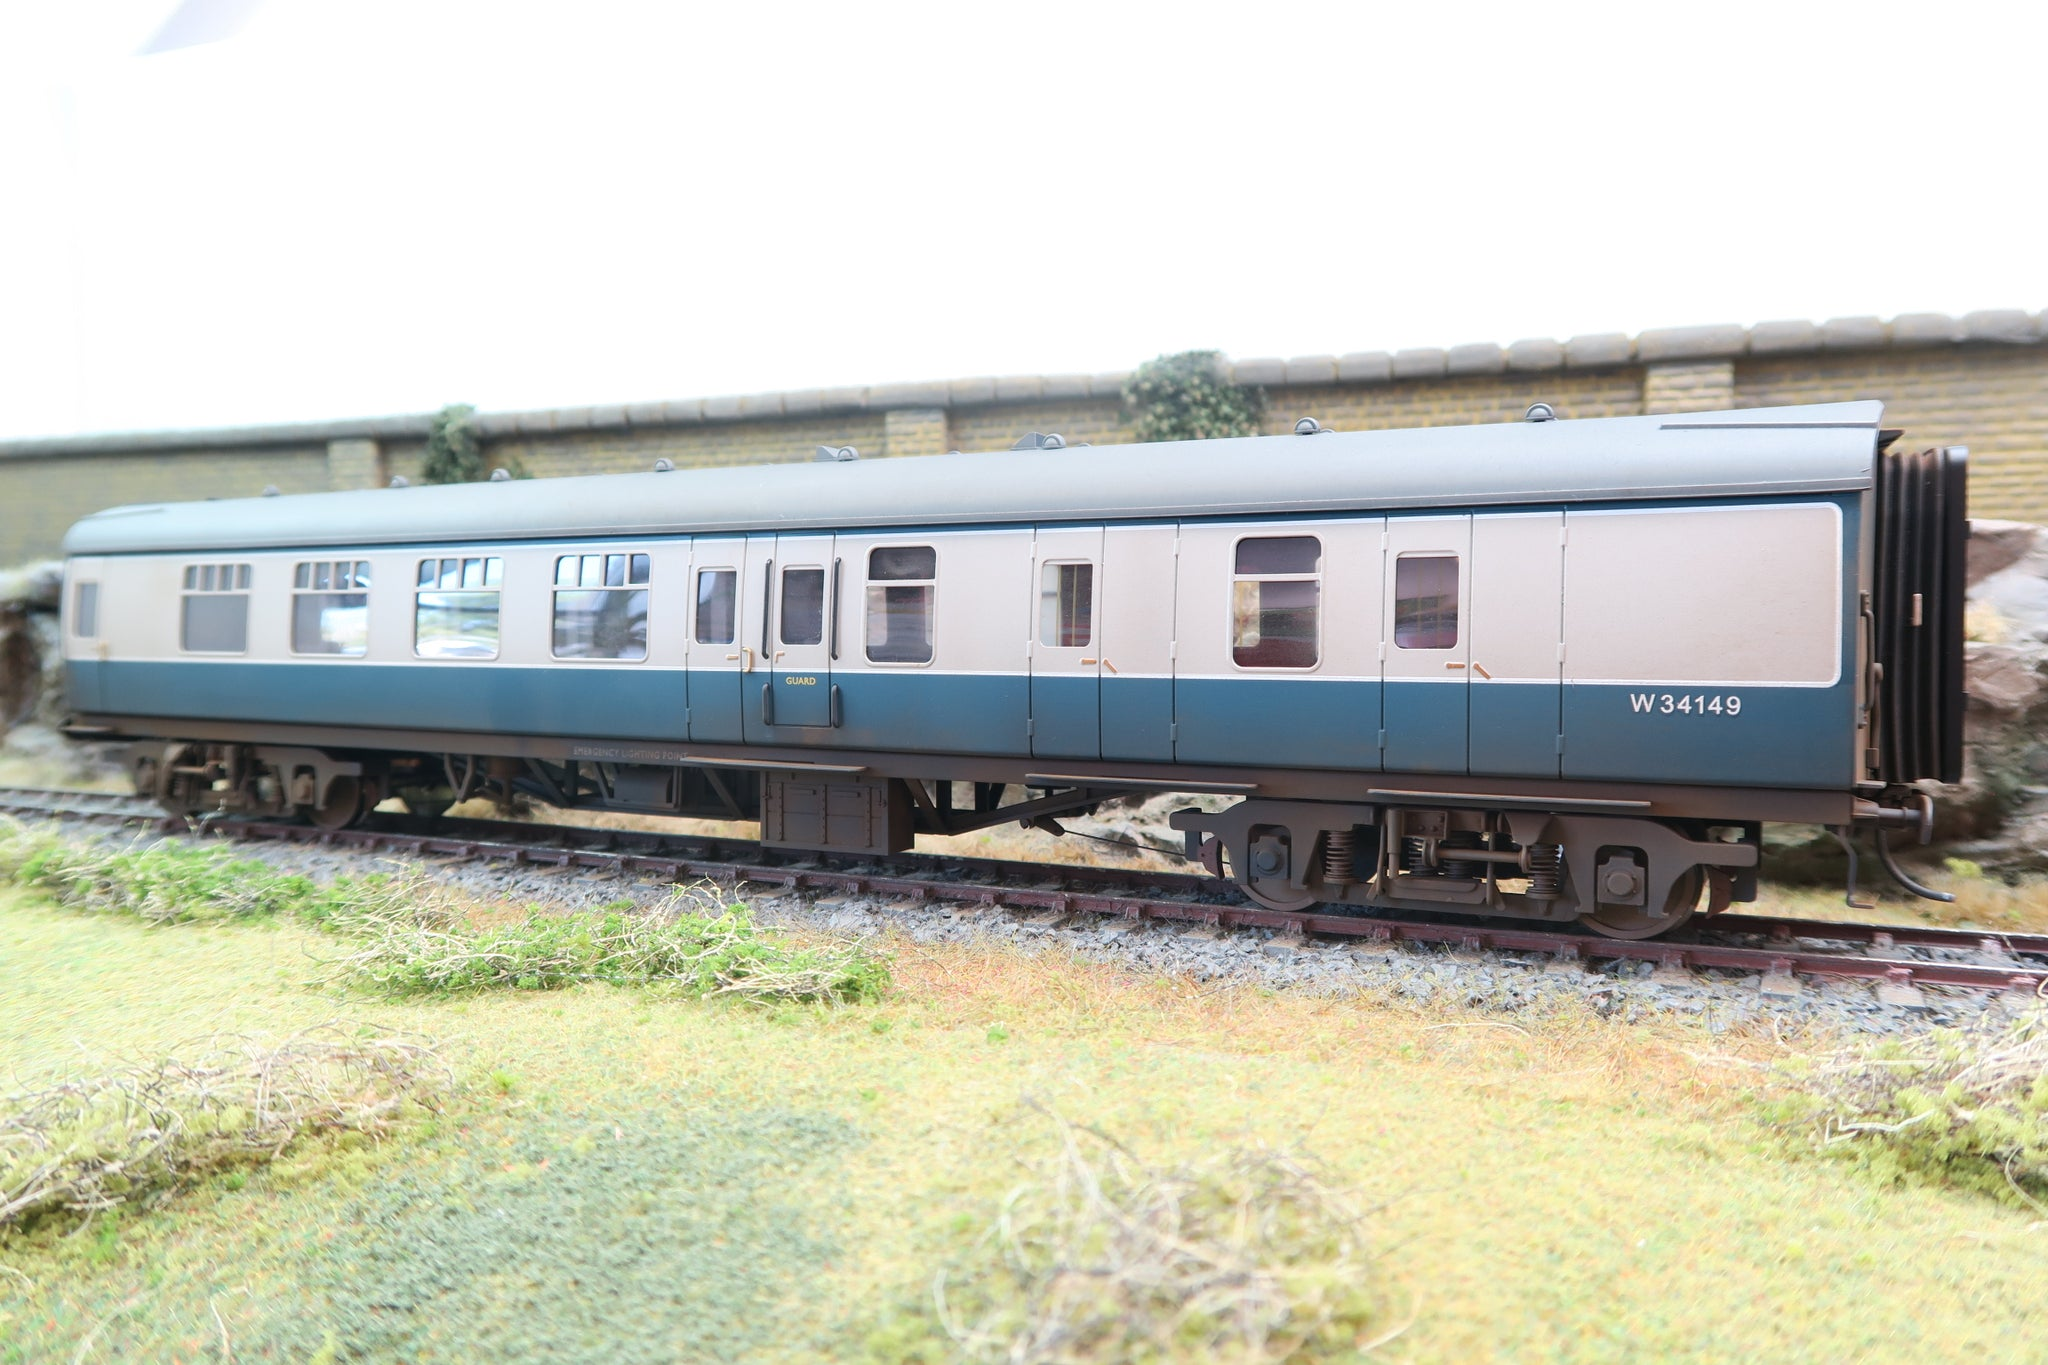 Darstaed 7mm O Gauge Finescale Blue & Grey BR Mk1 BSK (Brake Second Class), Professionally Numbered & Weathered